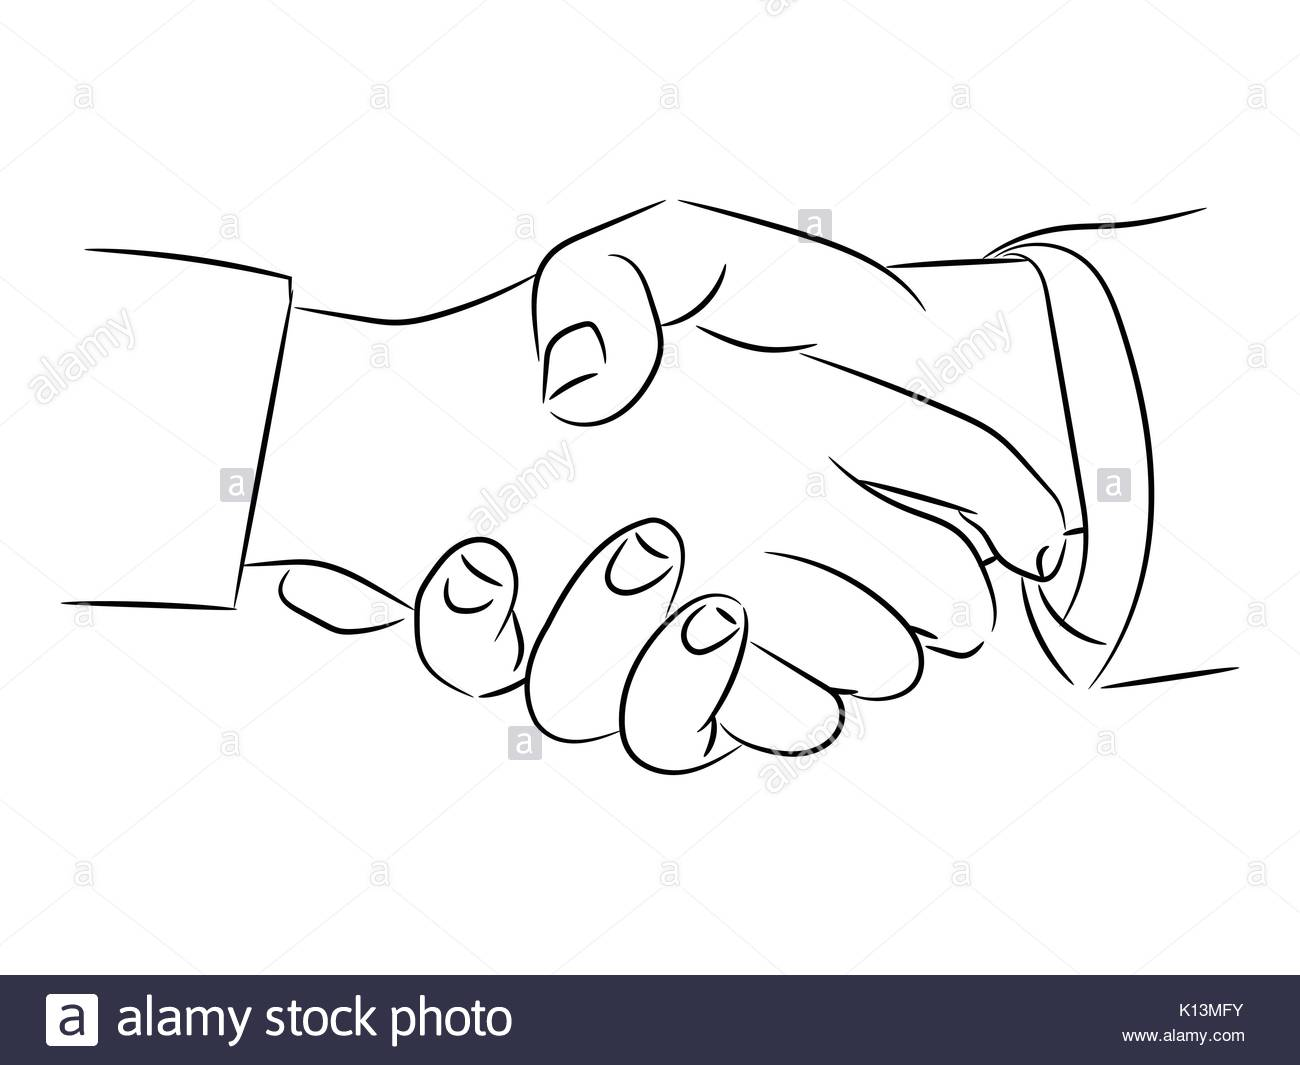 1300x1065 Isolated Of Hand Drawing Of Handshaking Vector Illustration Stock